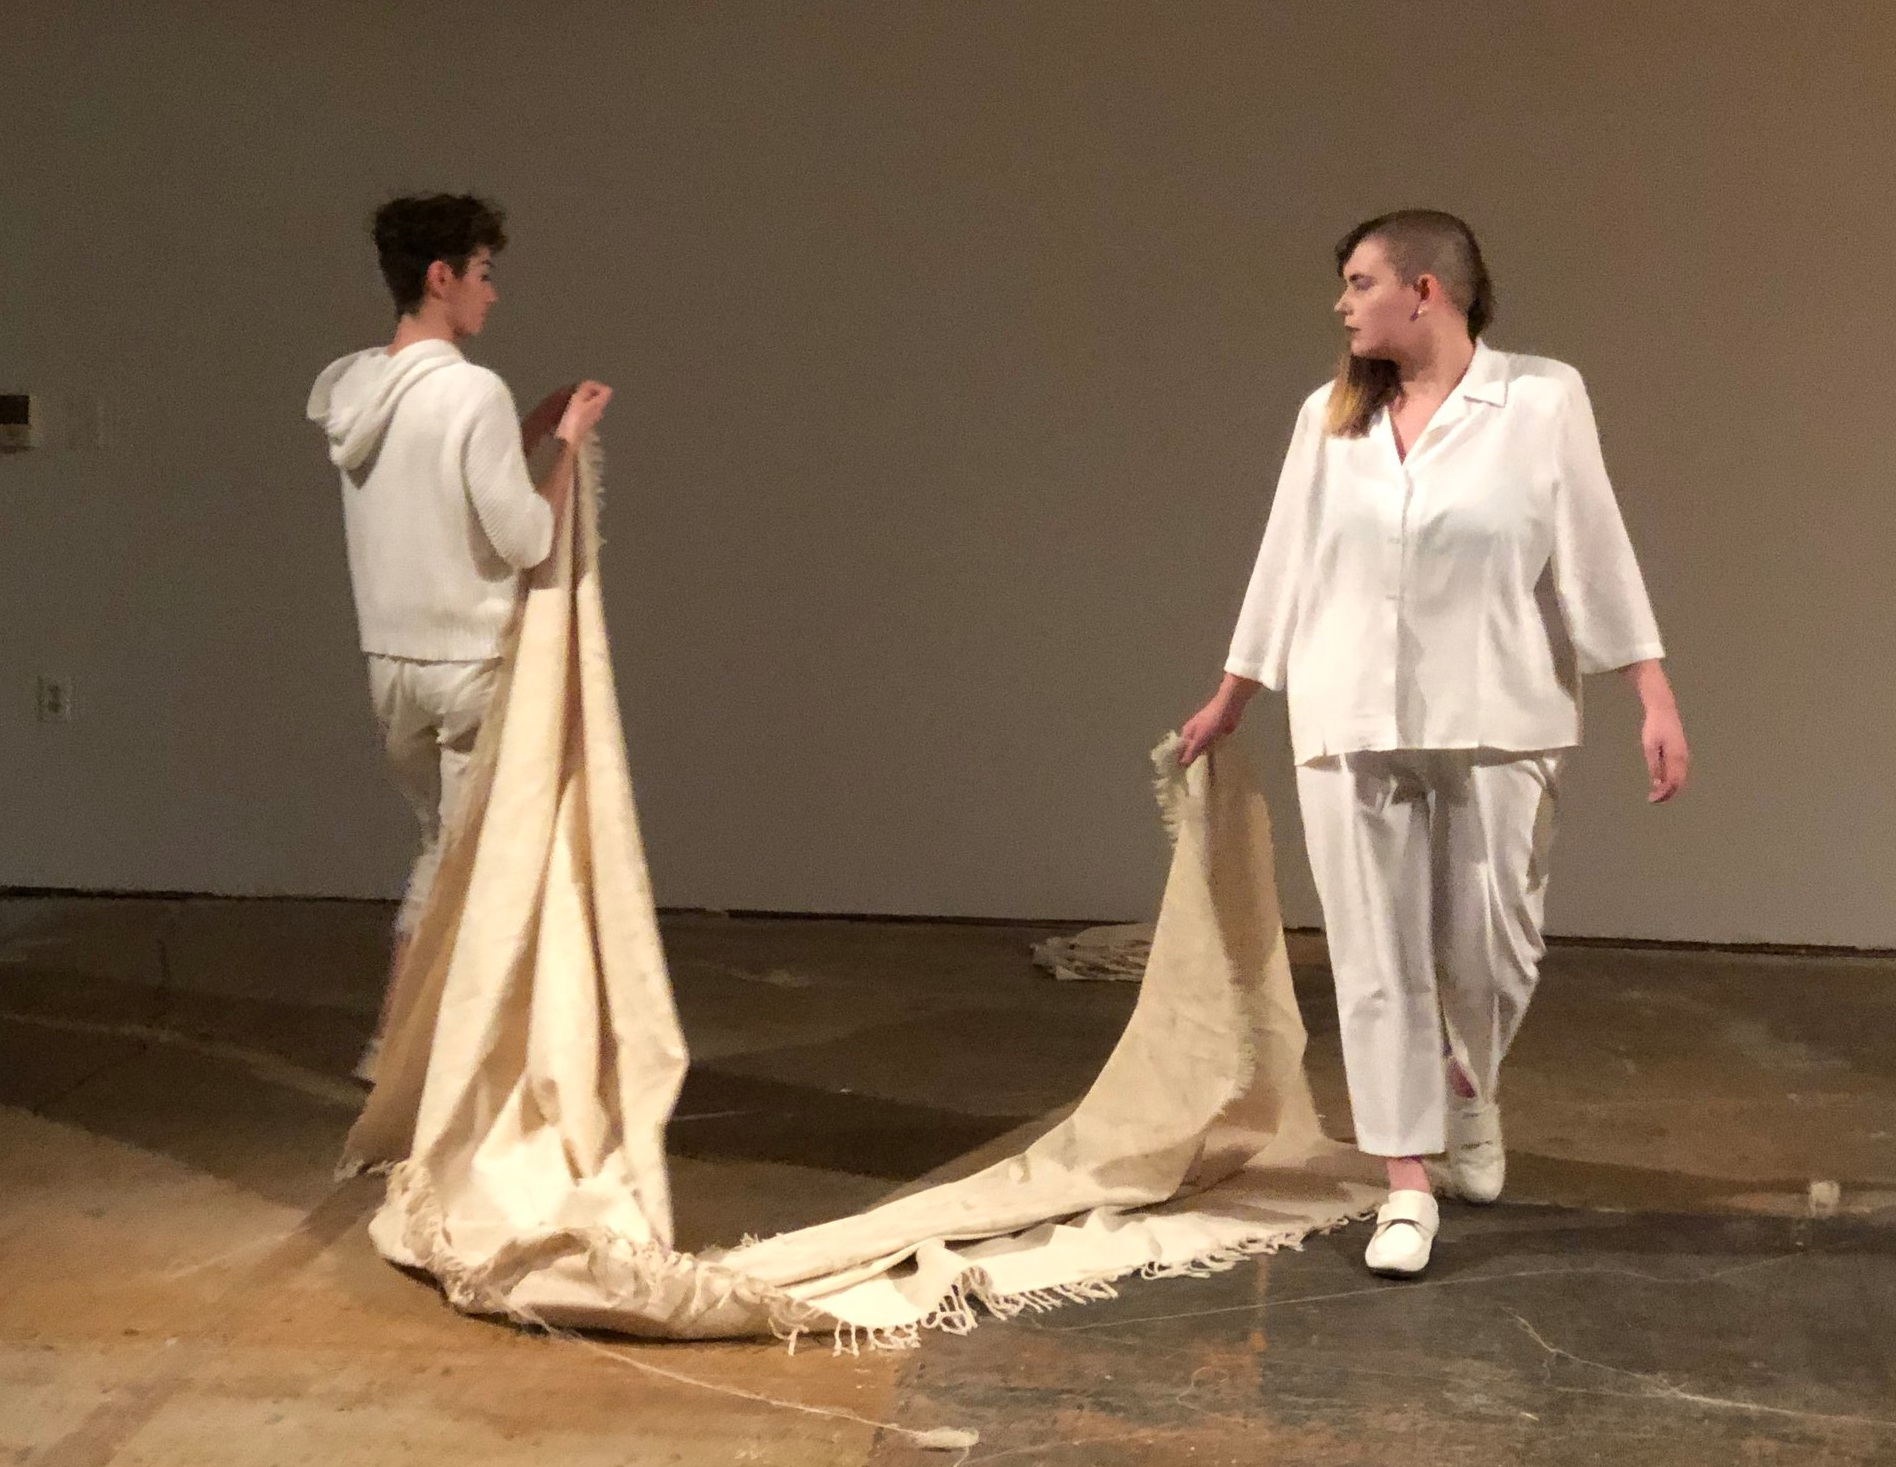 Deconstruction, performance with Melissa Joy Livermore